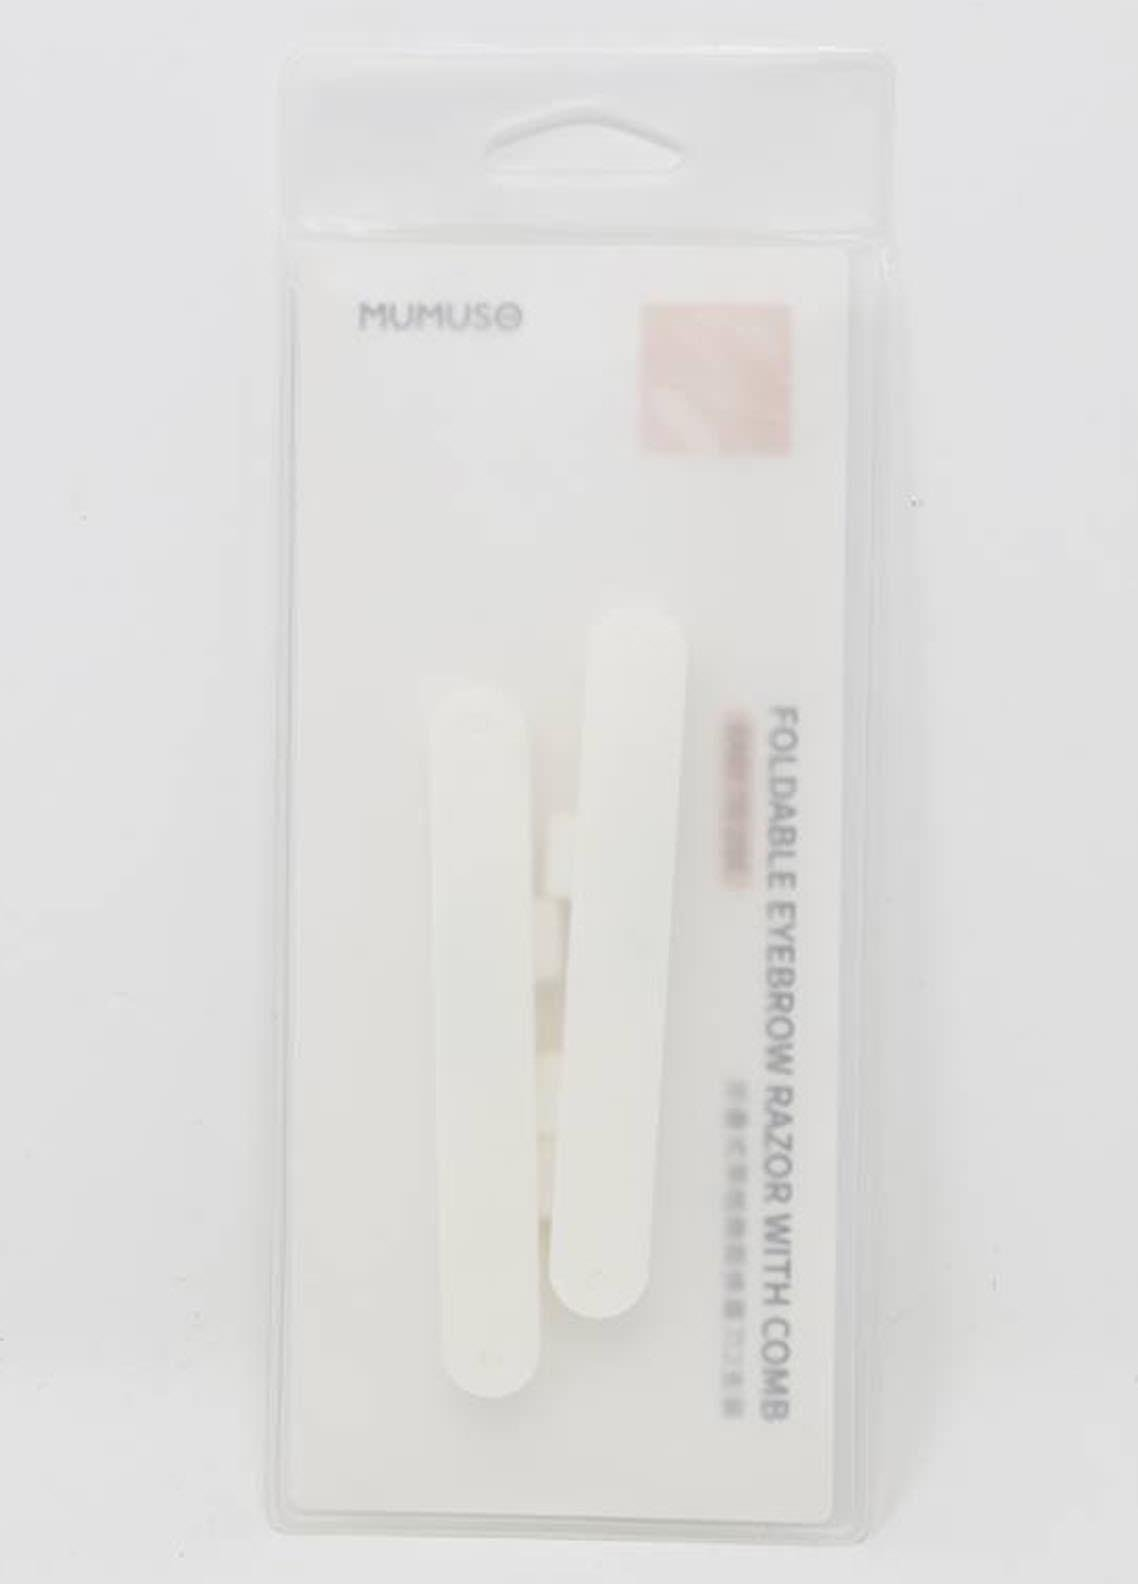 Mumuso Foldable Eyebrow Razor With Comb (Precision Cover/2-Pack)